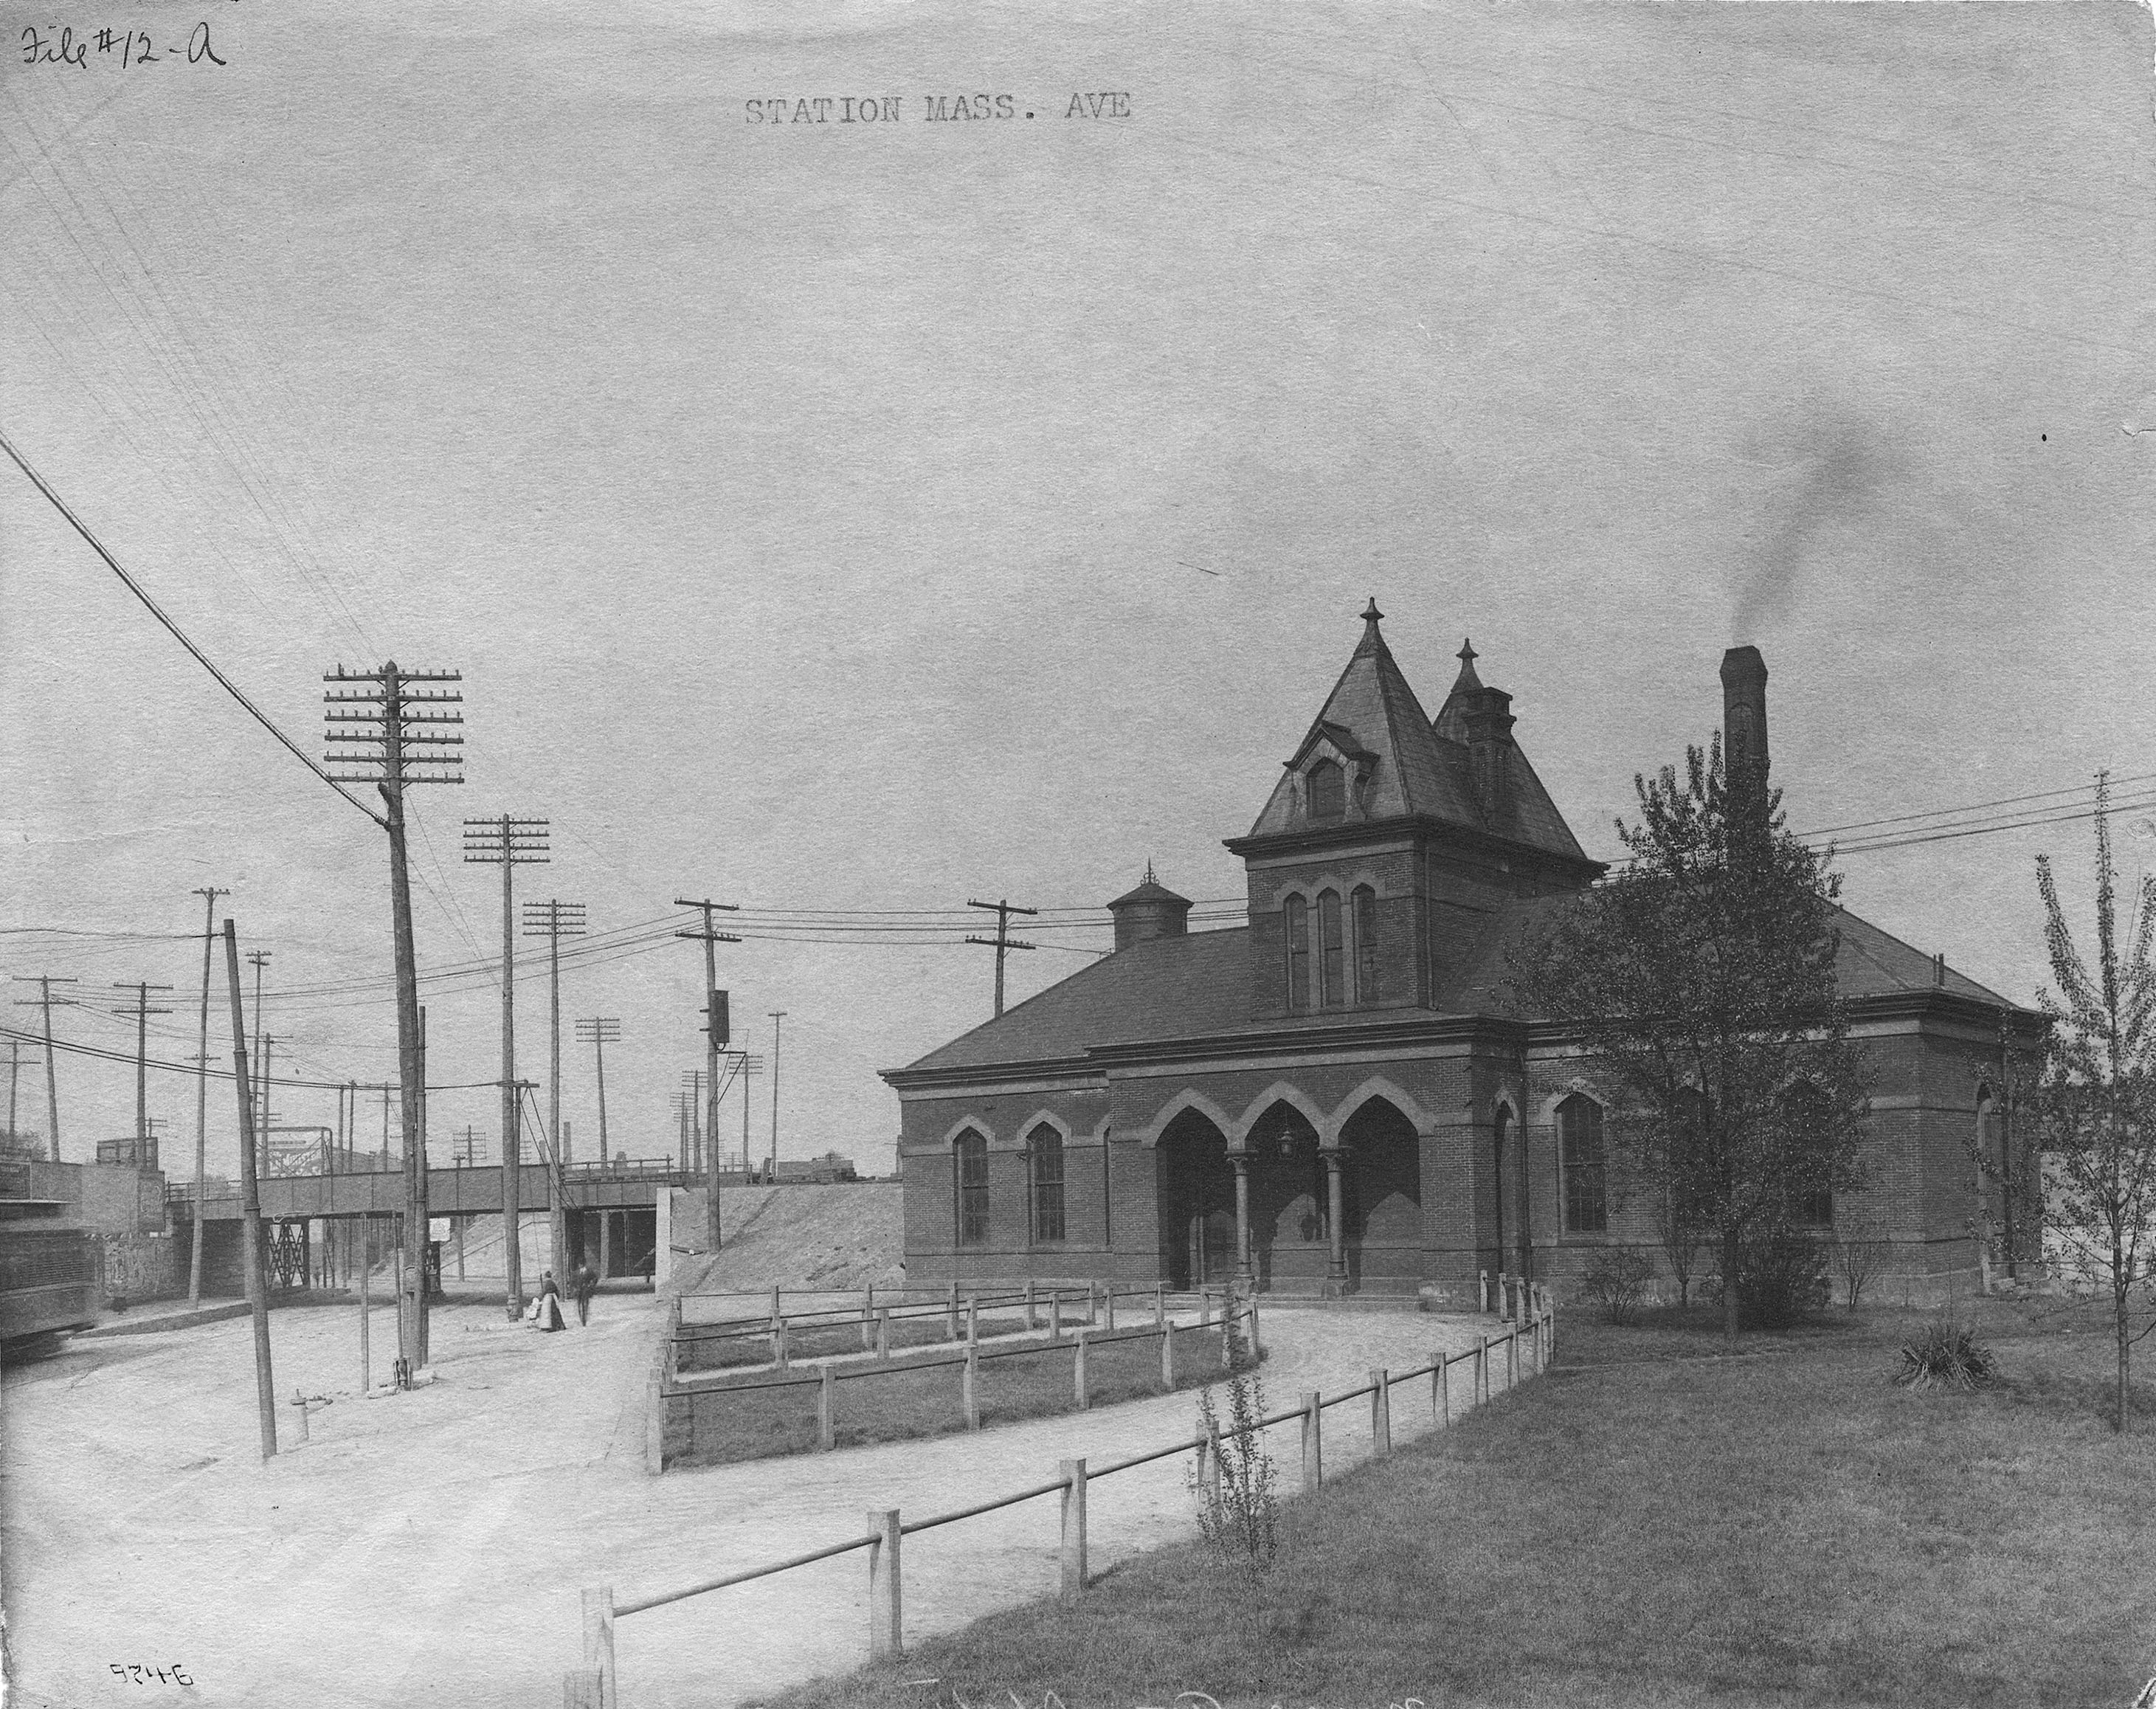 Then & Now Revisited: The Massachusetts Avenue Passenger Depot